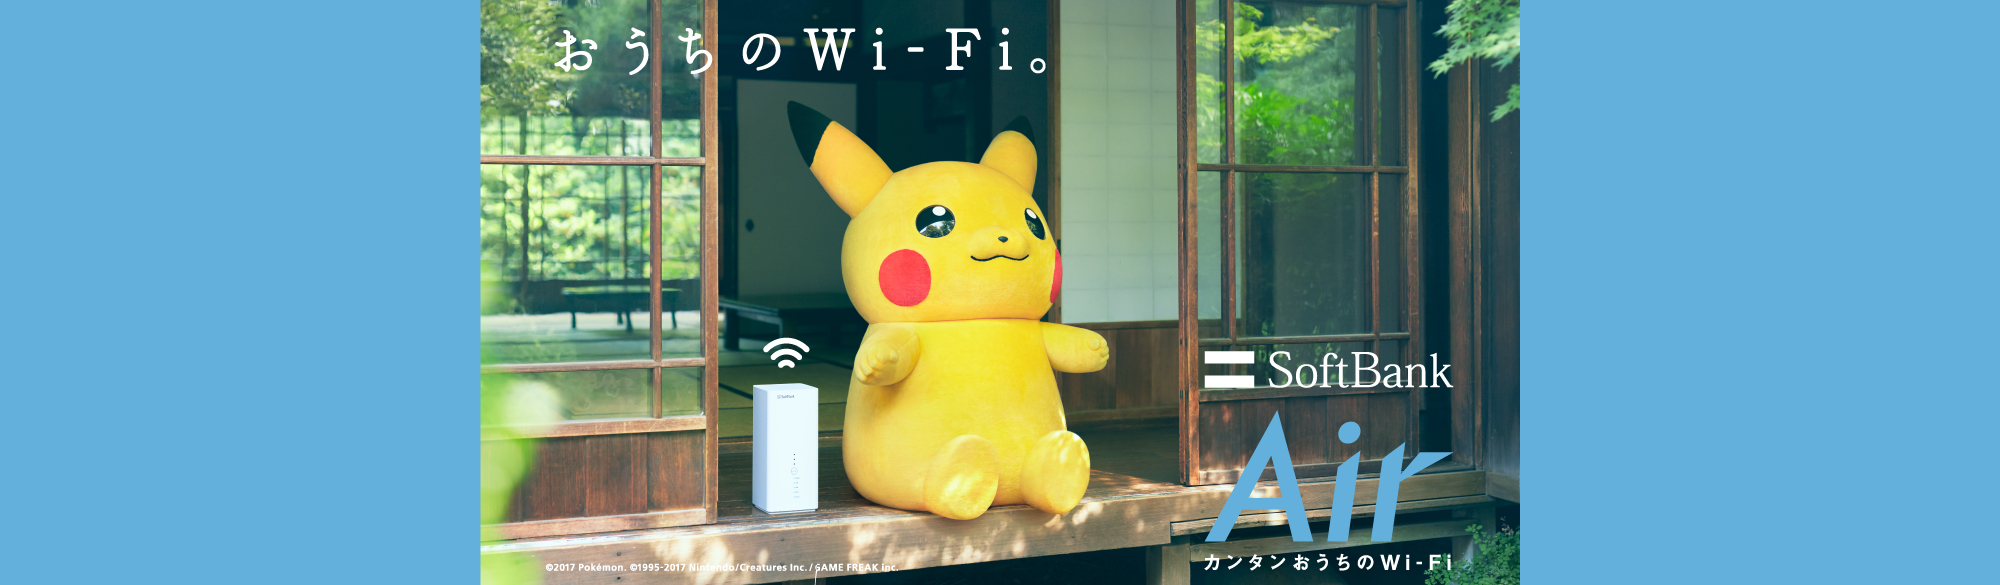 おうちのWi-Fi。 SoftBank Air カンタンおうちのWi-Fi ©2017 Pokémon. ©1995-2017 Nintendo/Creatures Inc./GAME FREAK inc.